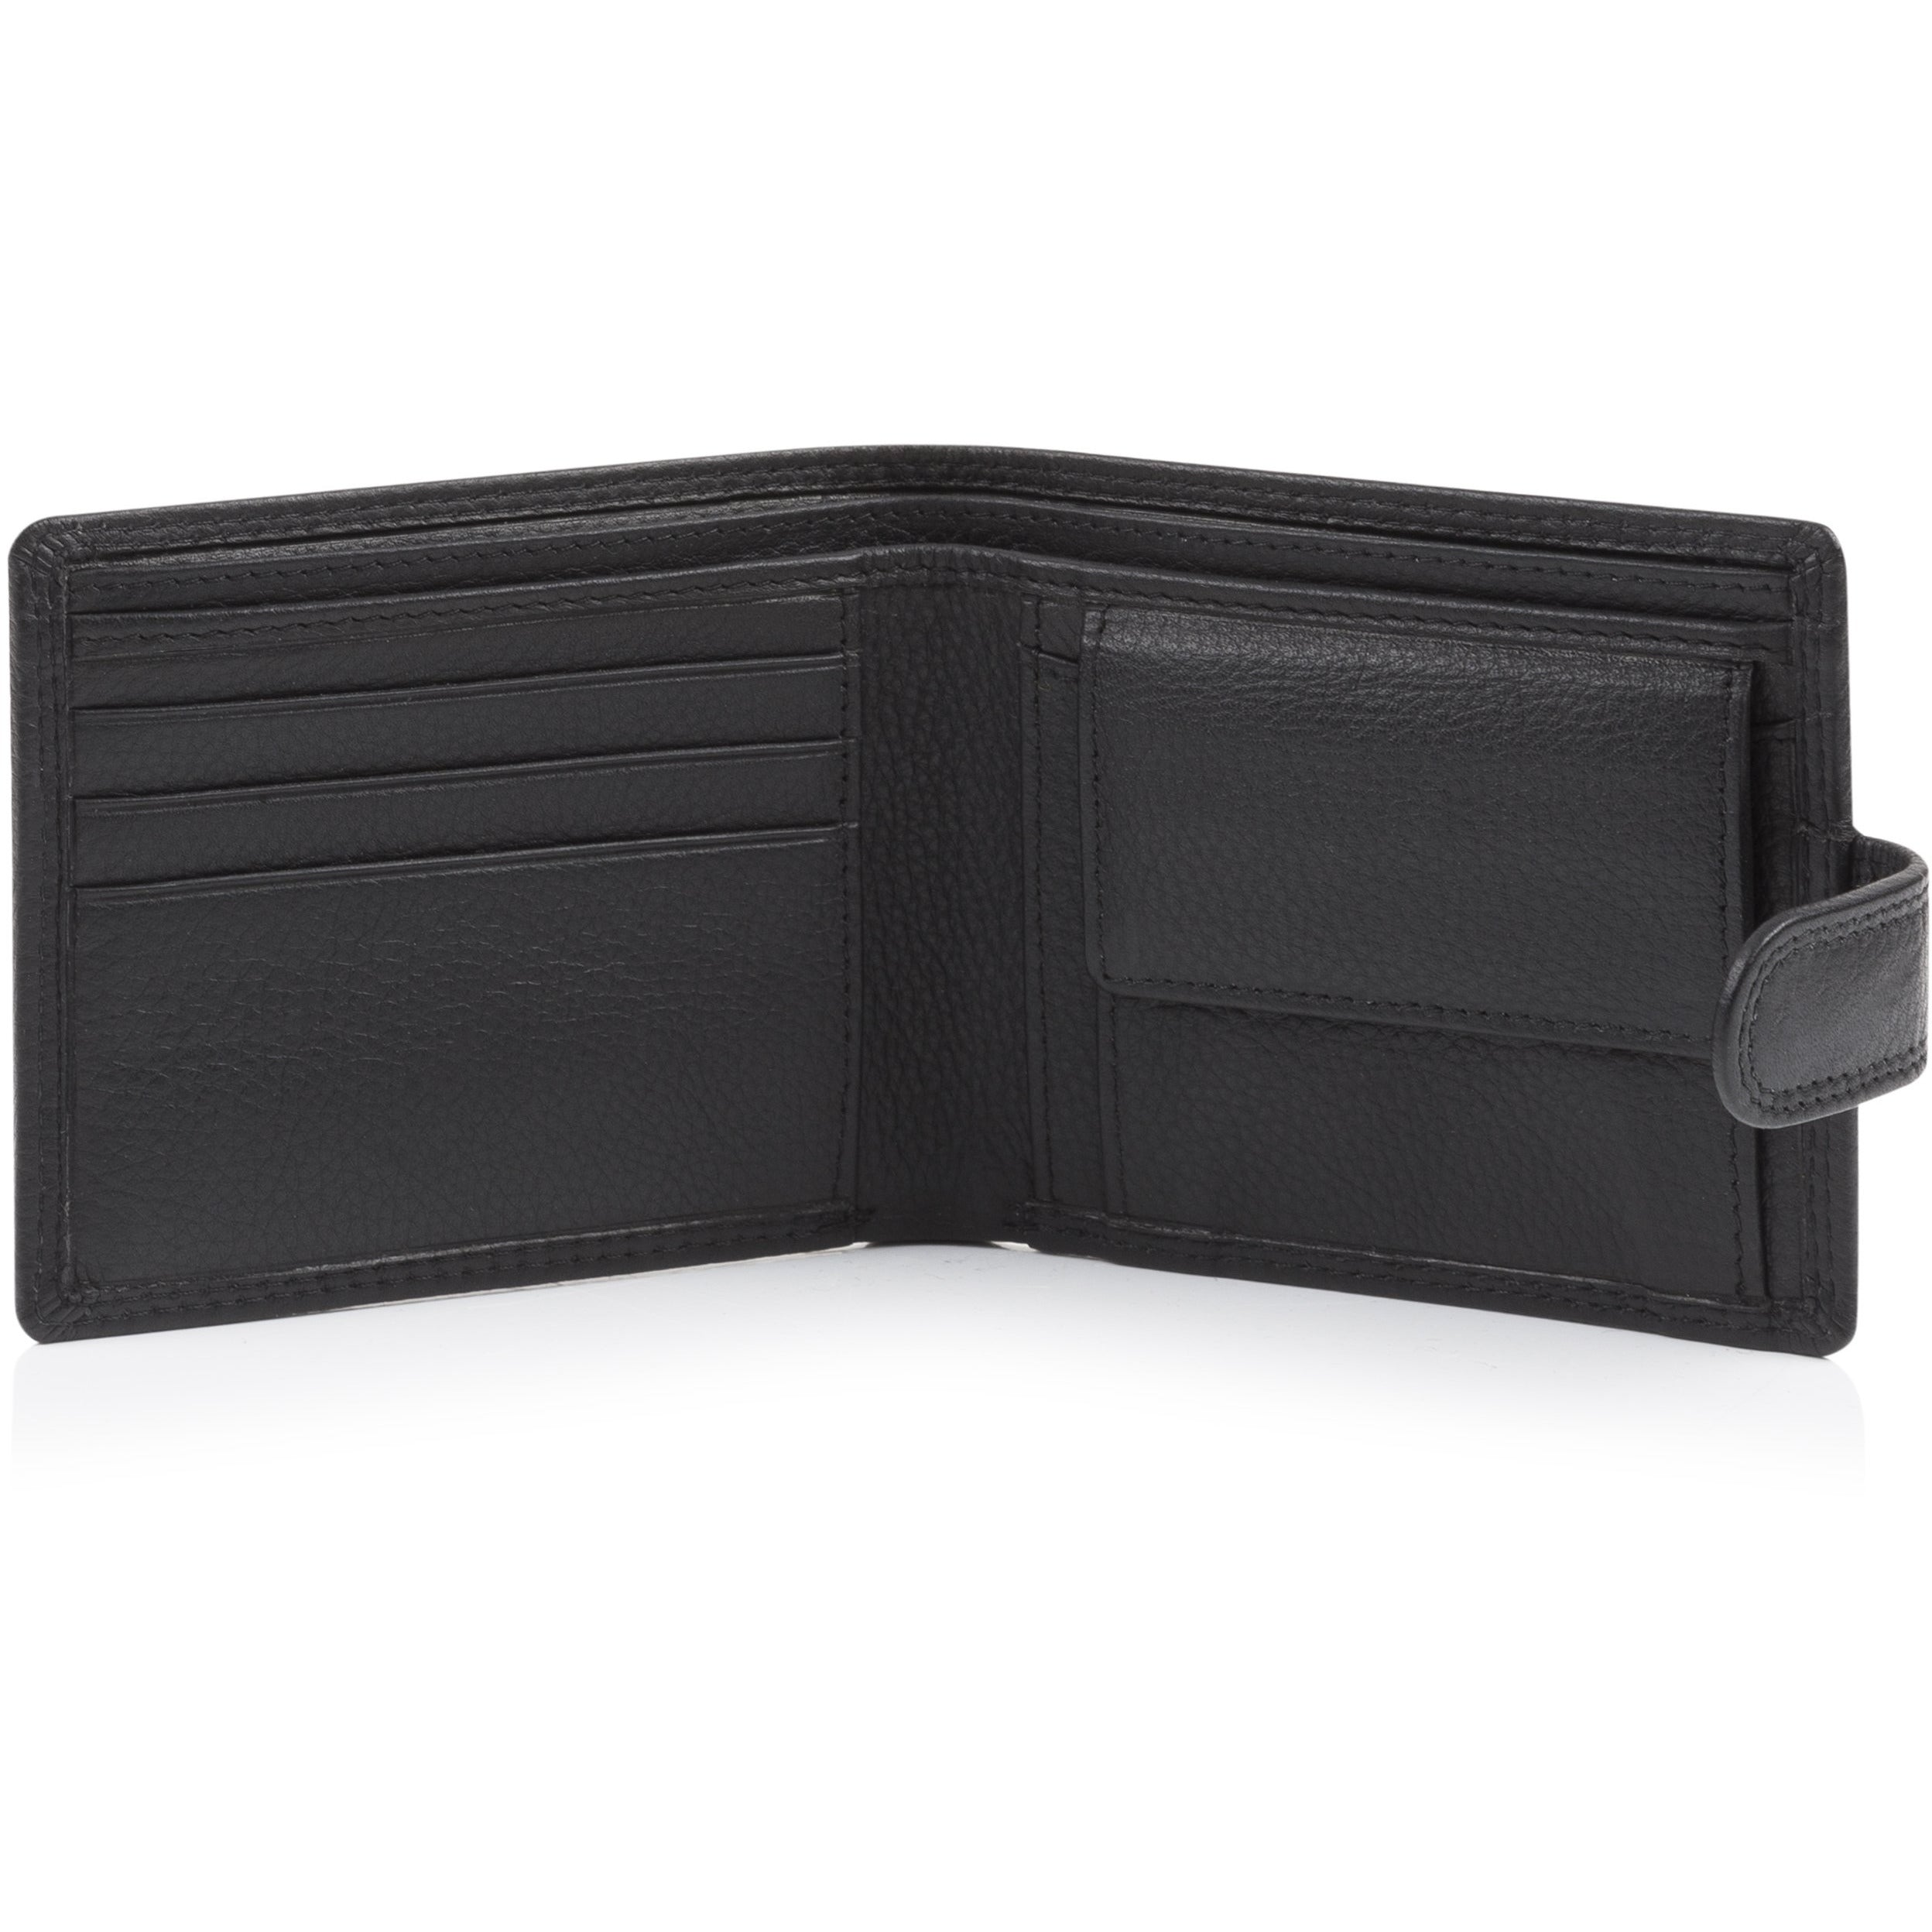 Metal Crest Leather Wallet